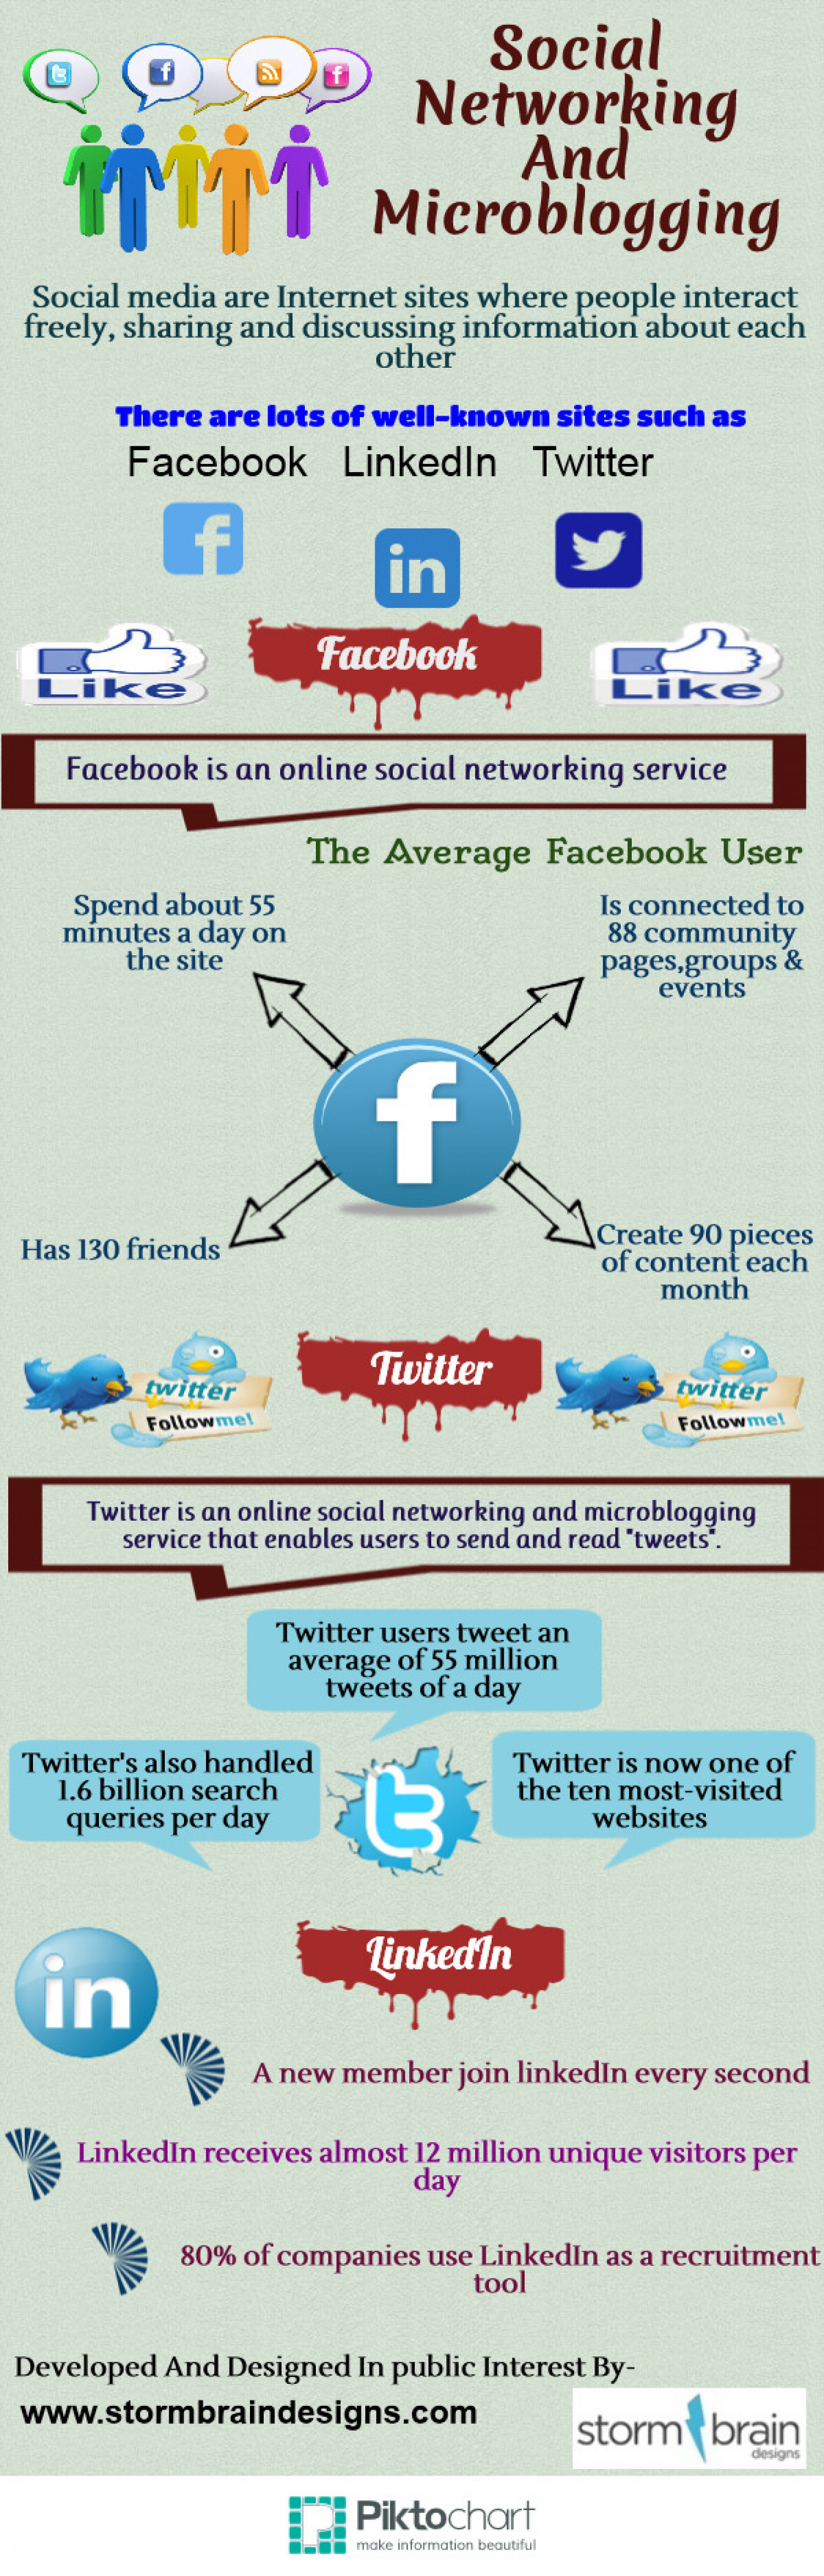 Social Networking And Microblogging Infographic